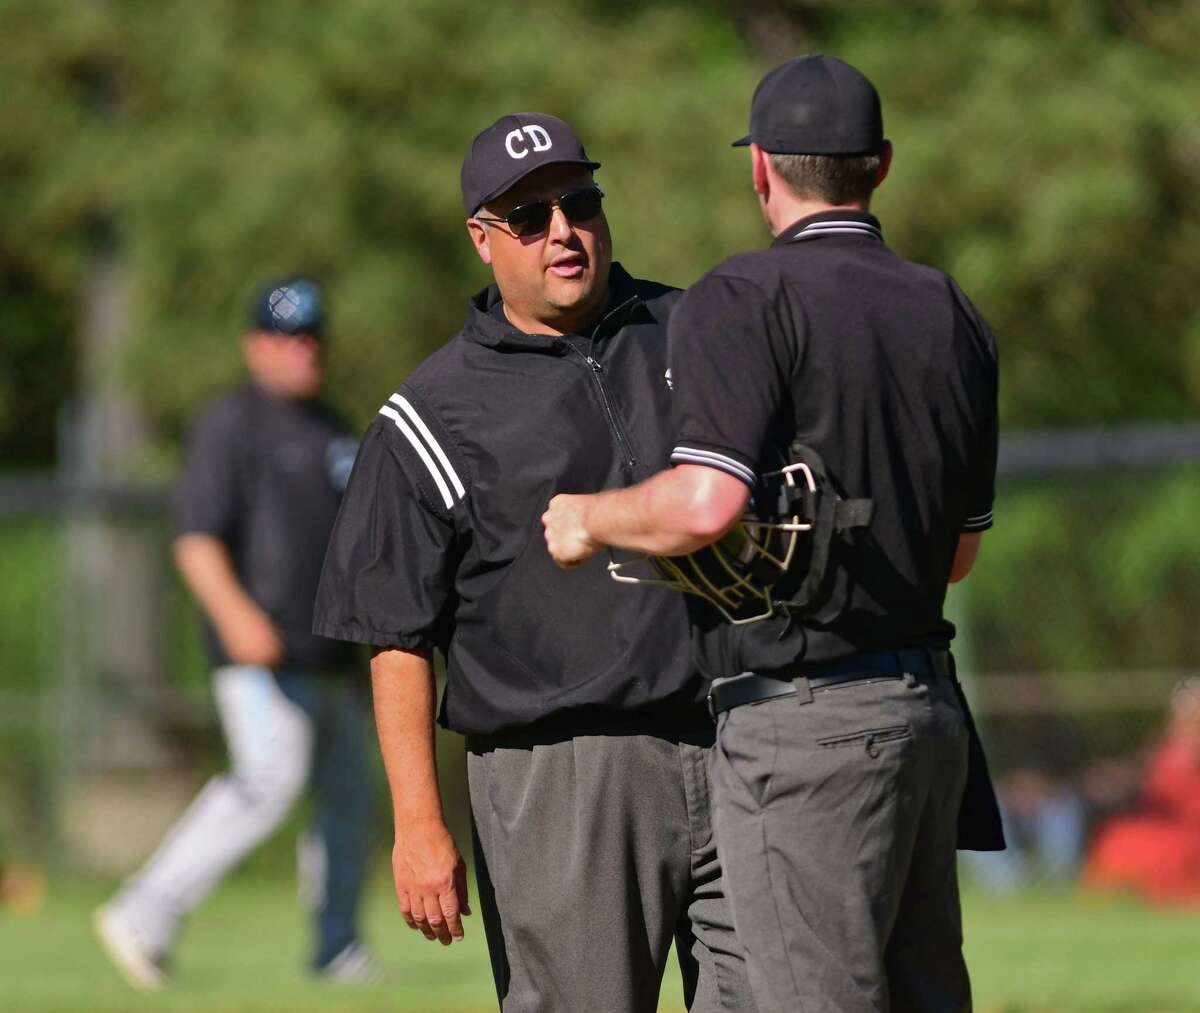 Base umpire Greg Massaroni, left, is seen talking to home plate umpire Sean Ellott during a baseball game between Colonie and Columbia at Cook Park on Thursday, June 10, 2021 in Colonie, N.Y. (Lori Van Buren/Times Union)